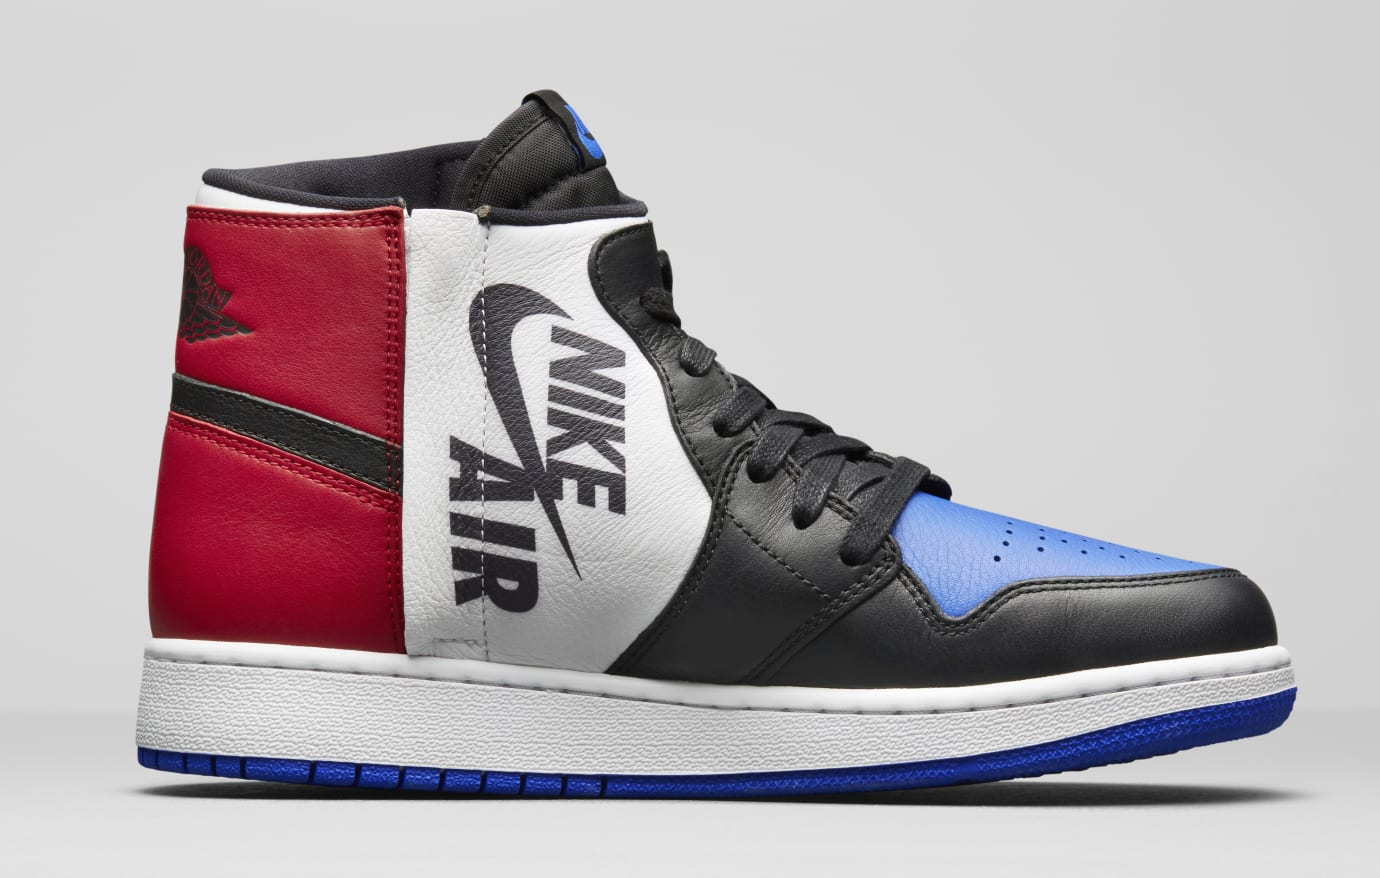 ca67b390040e Image via Nike Air Jordan 1 Rebel  Top Three  AT4151-001 (Medial)